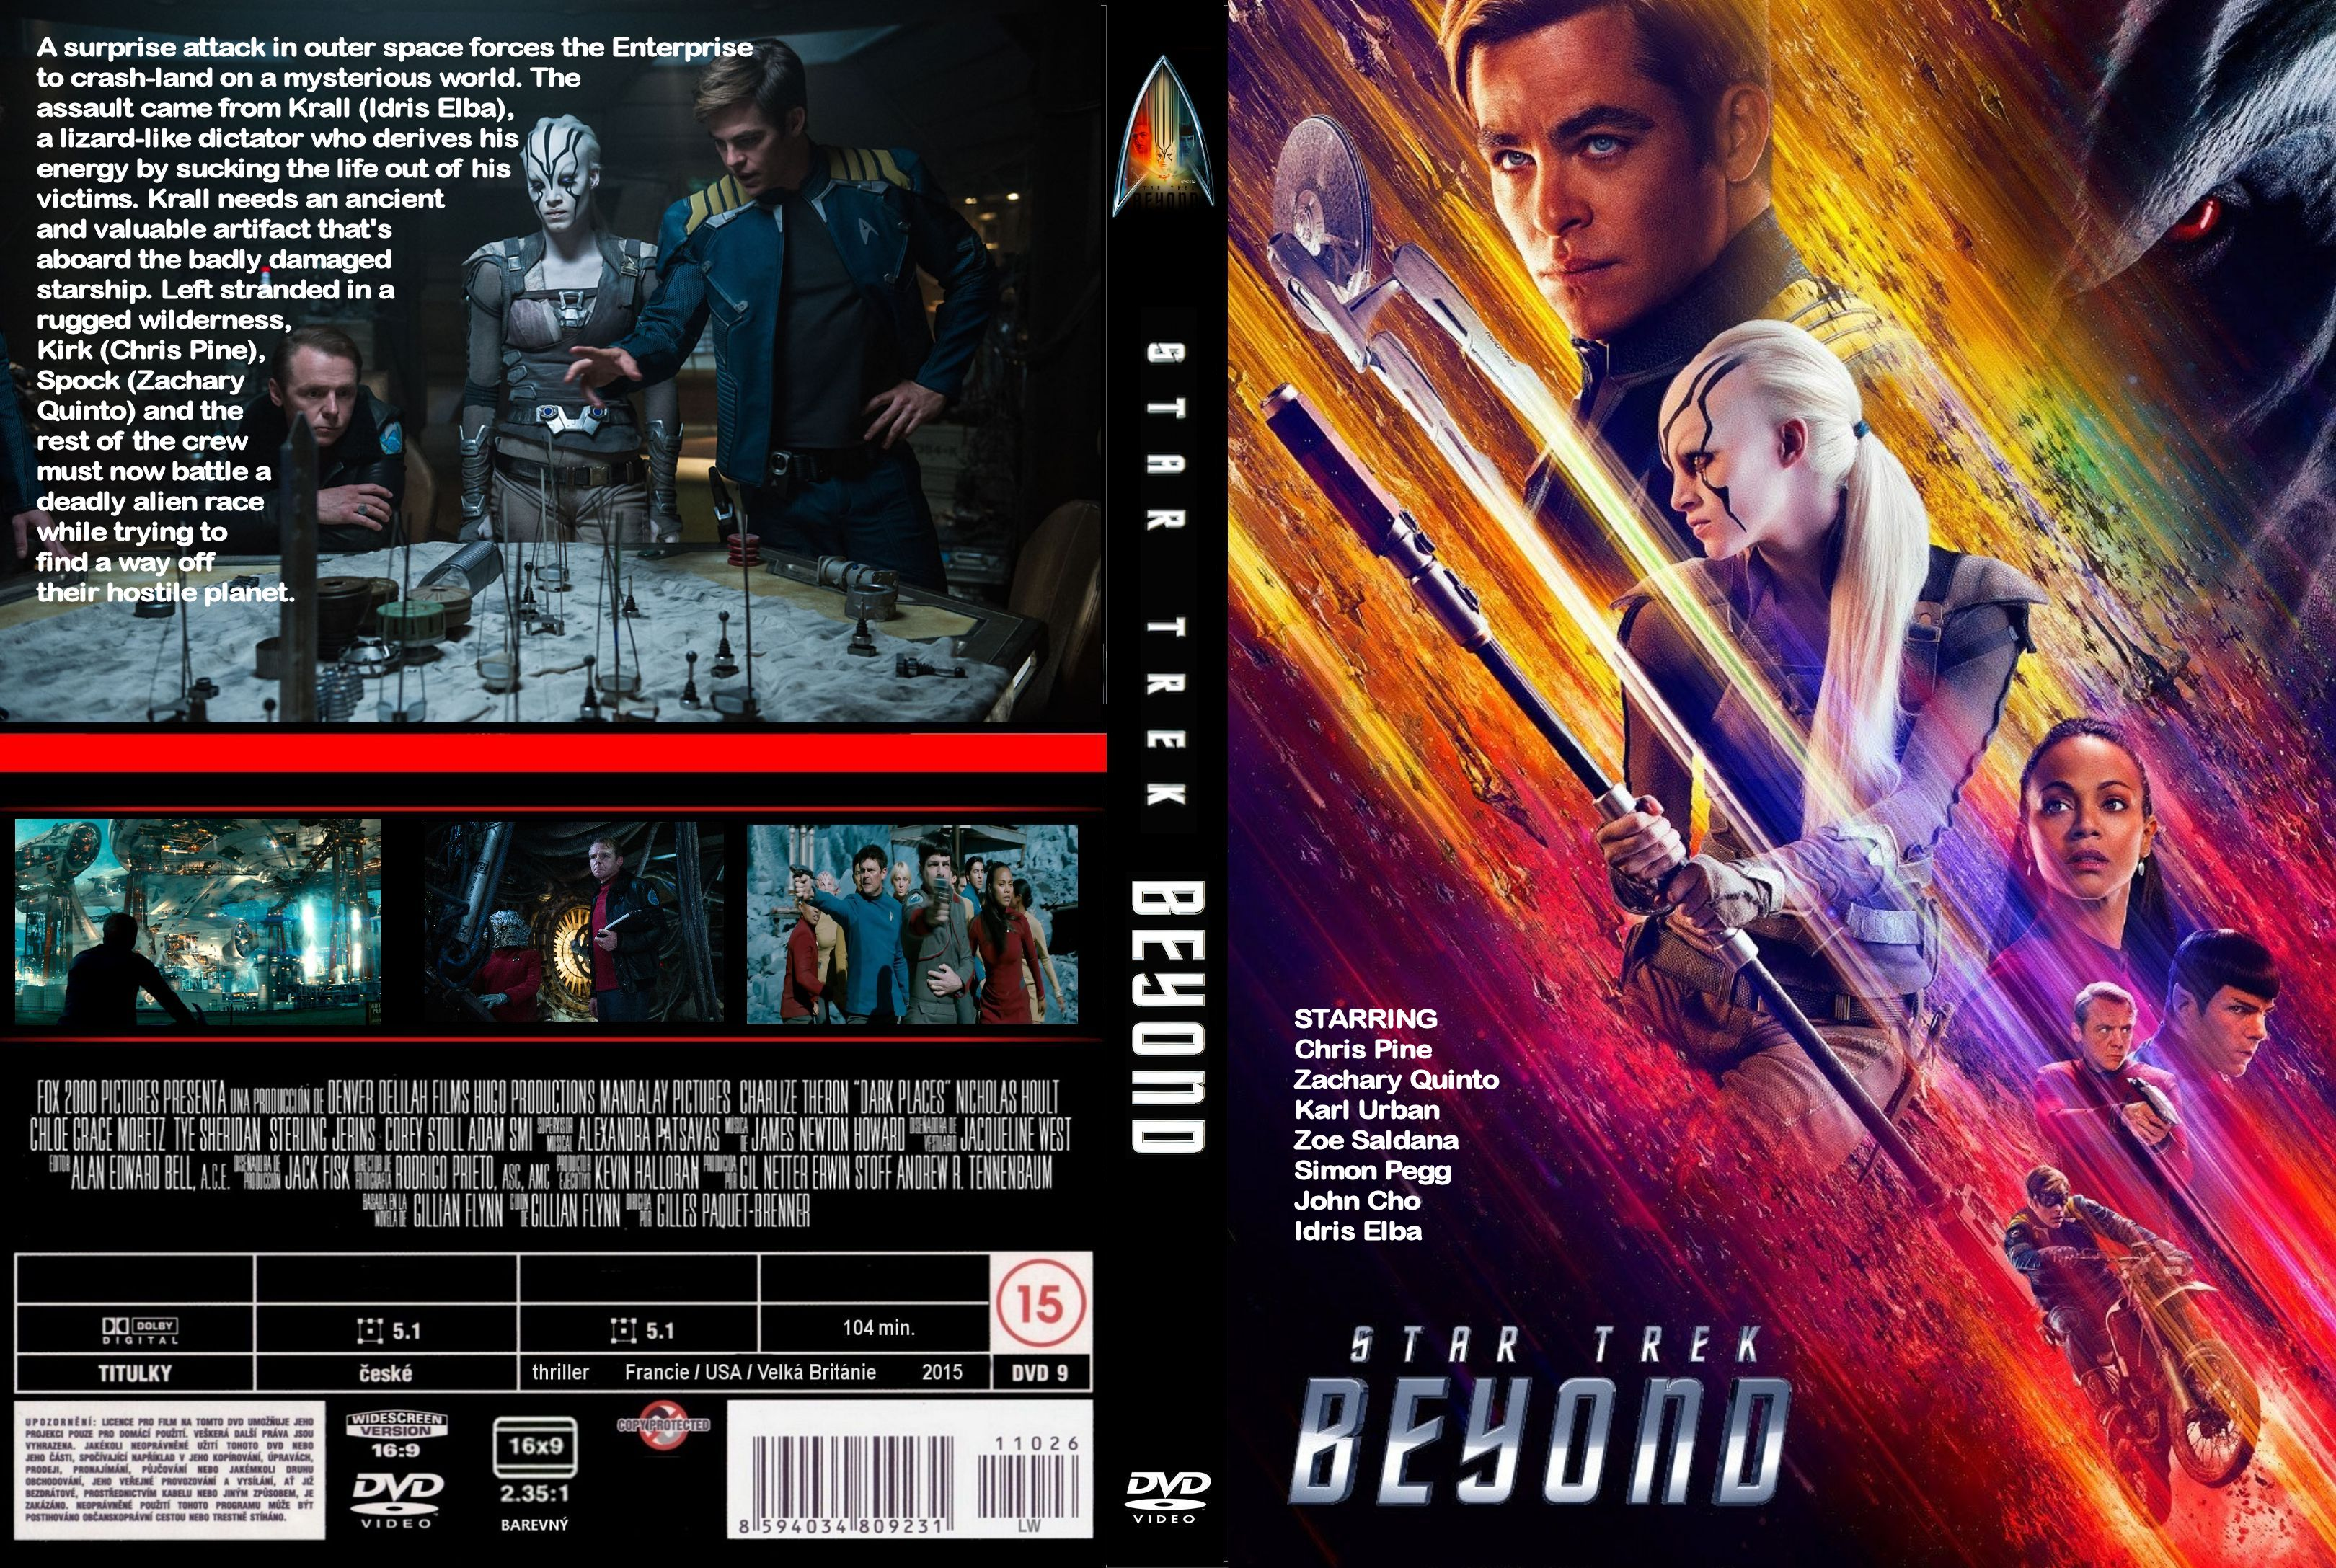 Star Trek Beyond (2016) okładka